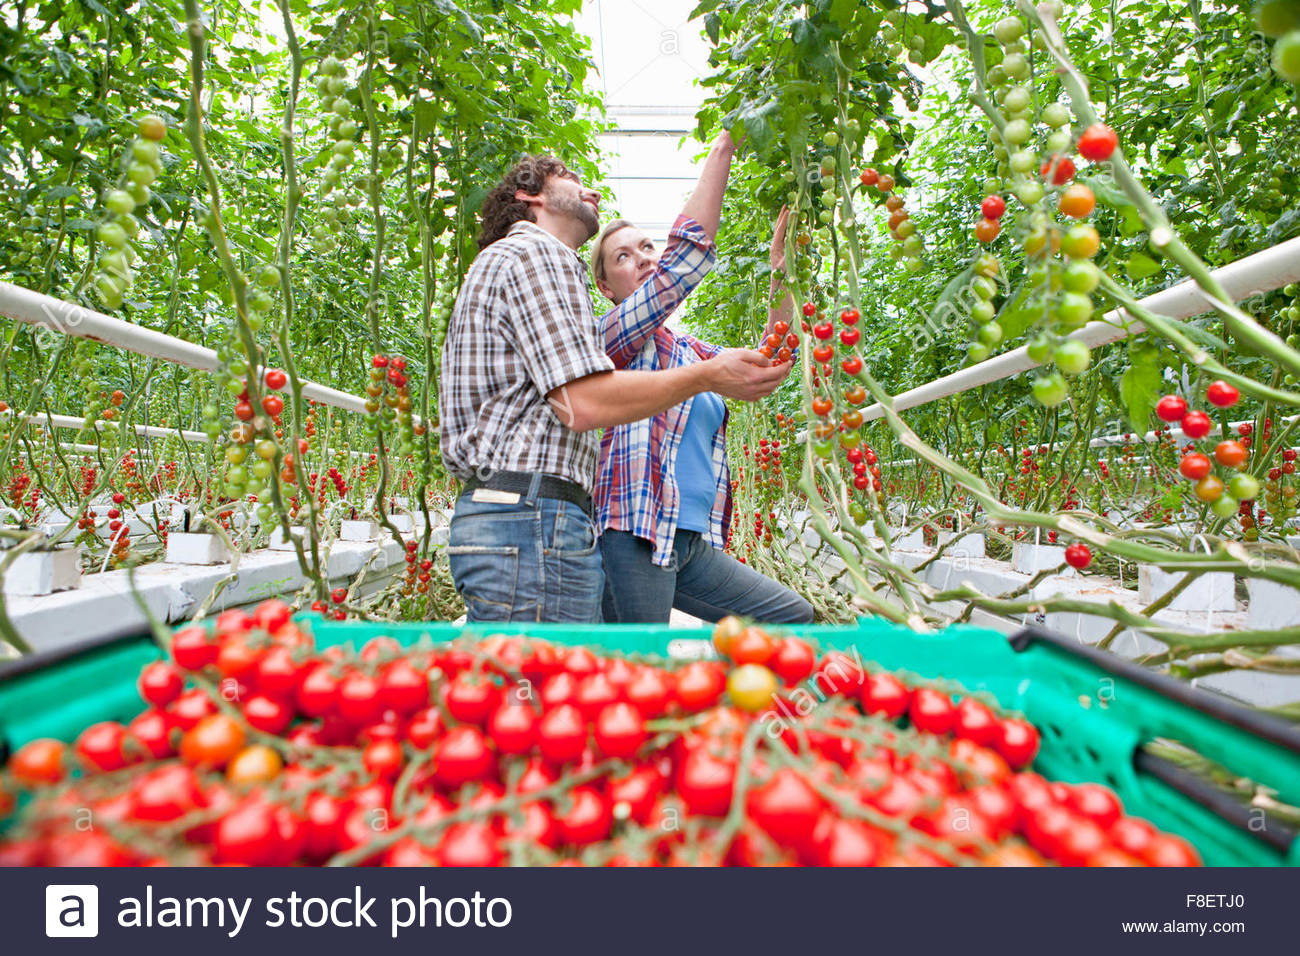 Growers harvesting ripe red vine tomatoes in greenhouse - Stock Image